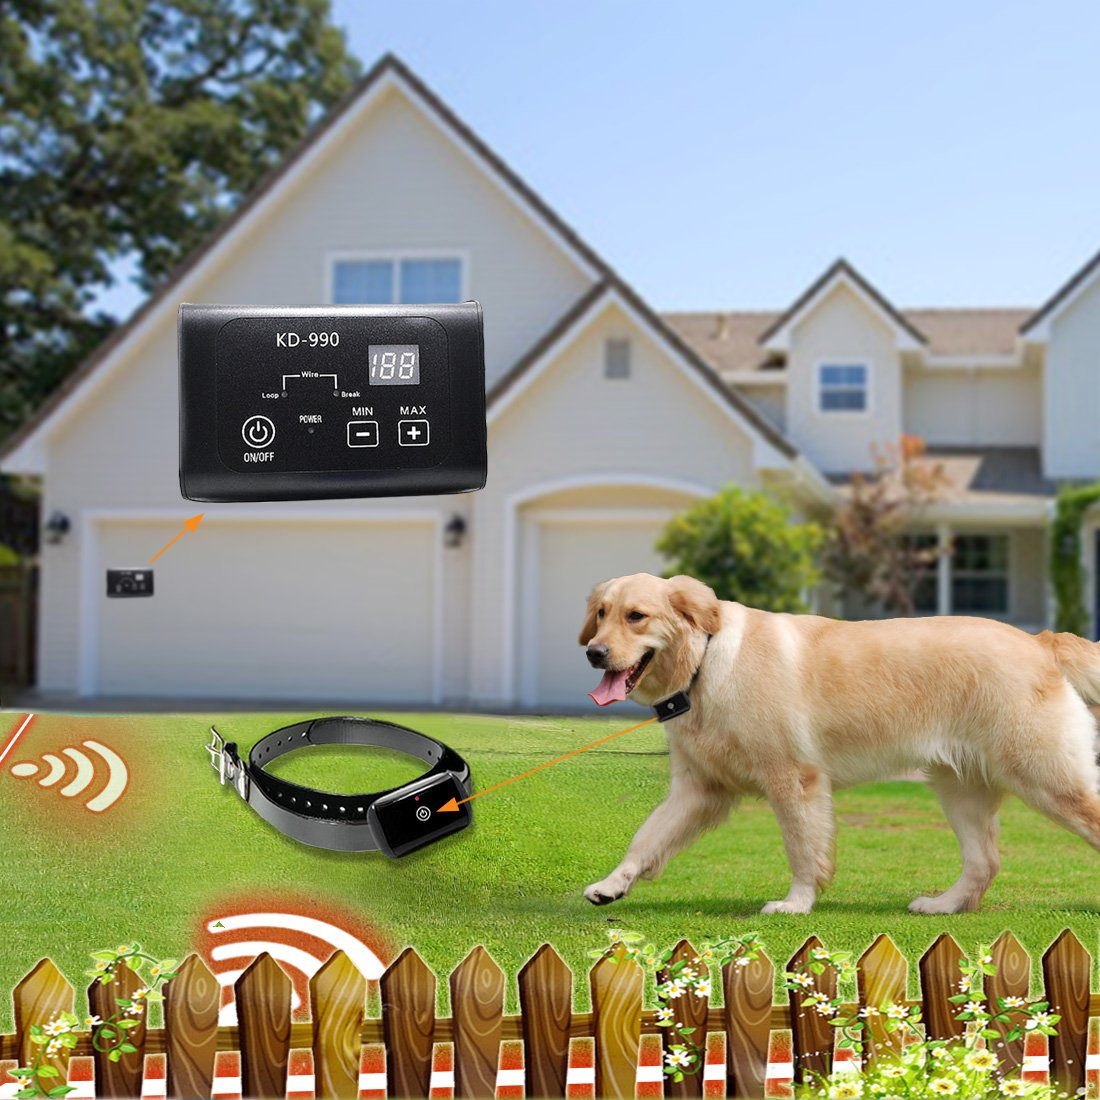 Two Dog Fence System AngelaKerry 2 X Electronic Dog Fence System, in-Ground Invisible Dog Containment with 650 950 Ft Wire, Receiver Send Beeps and Shock Correction (for Two Dog Fence System)